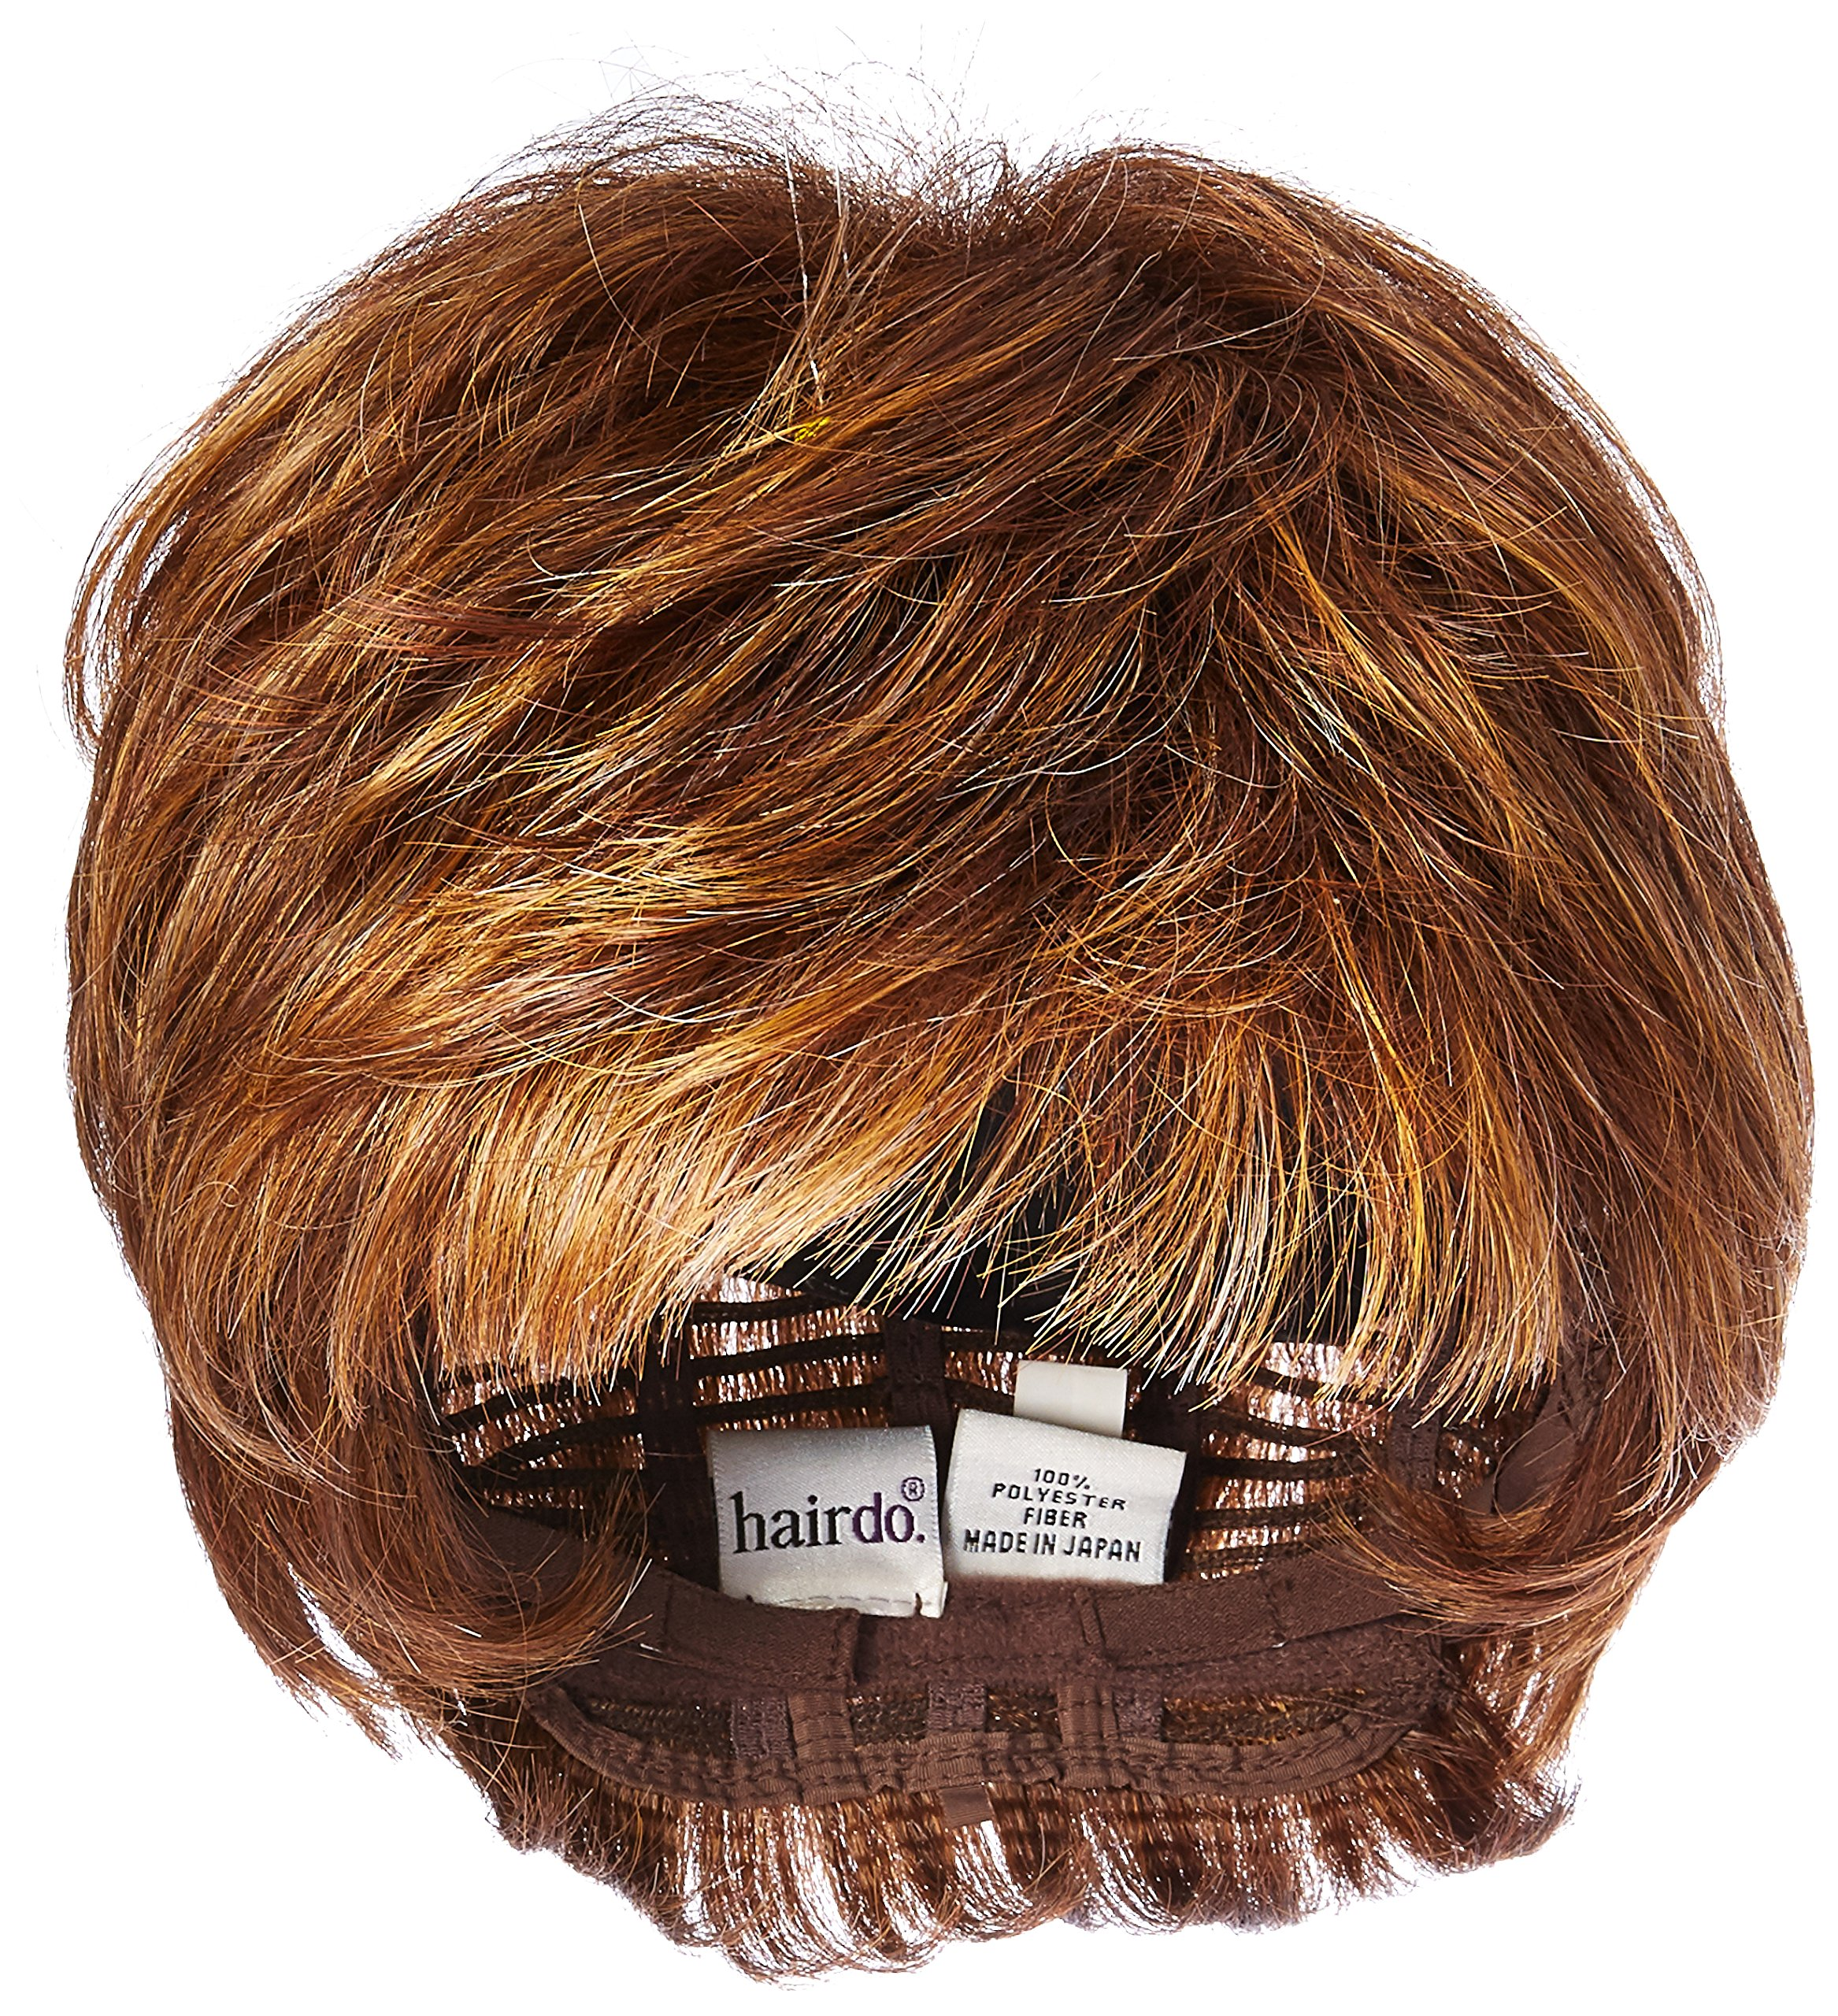 Textured Cut Wig  Color R3025S+ GLAZED CINNAMON - Hairdo Wigs Short Feathered Modern Tru2Life Heat Friendly Synthetic Wispy Bang by Hairdo